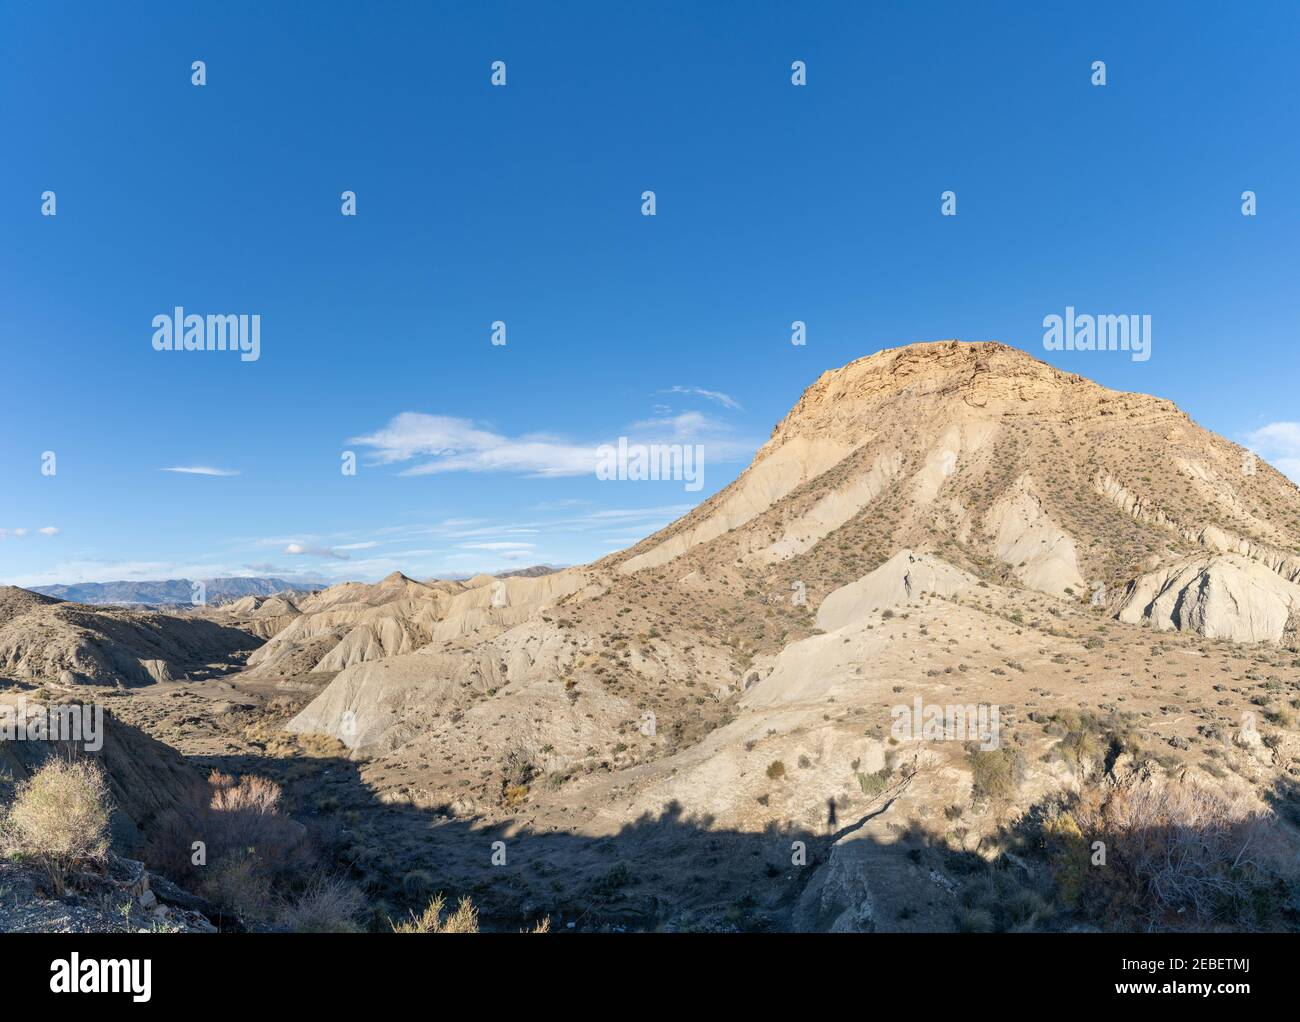 A view of the Tabernas desert in Andalusia Stock Photo